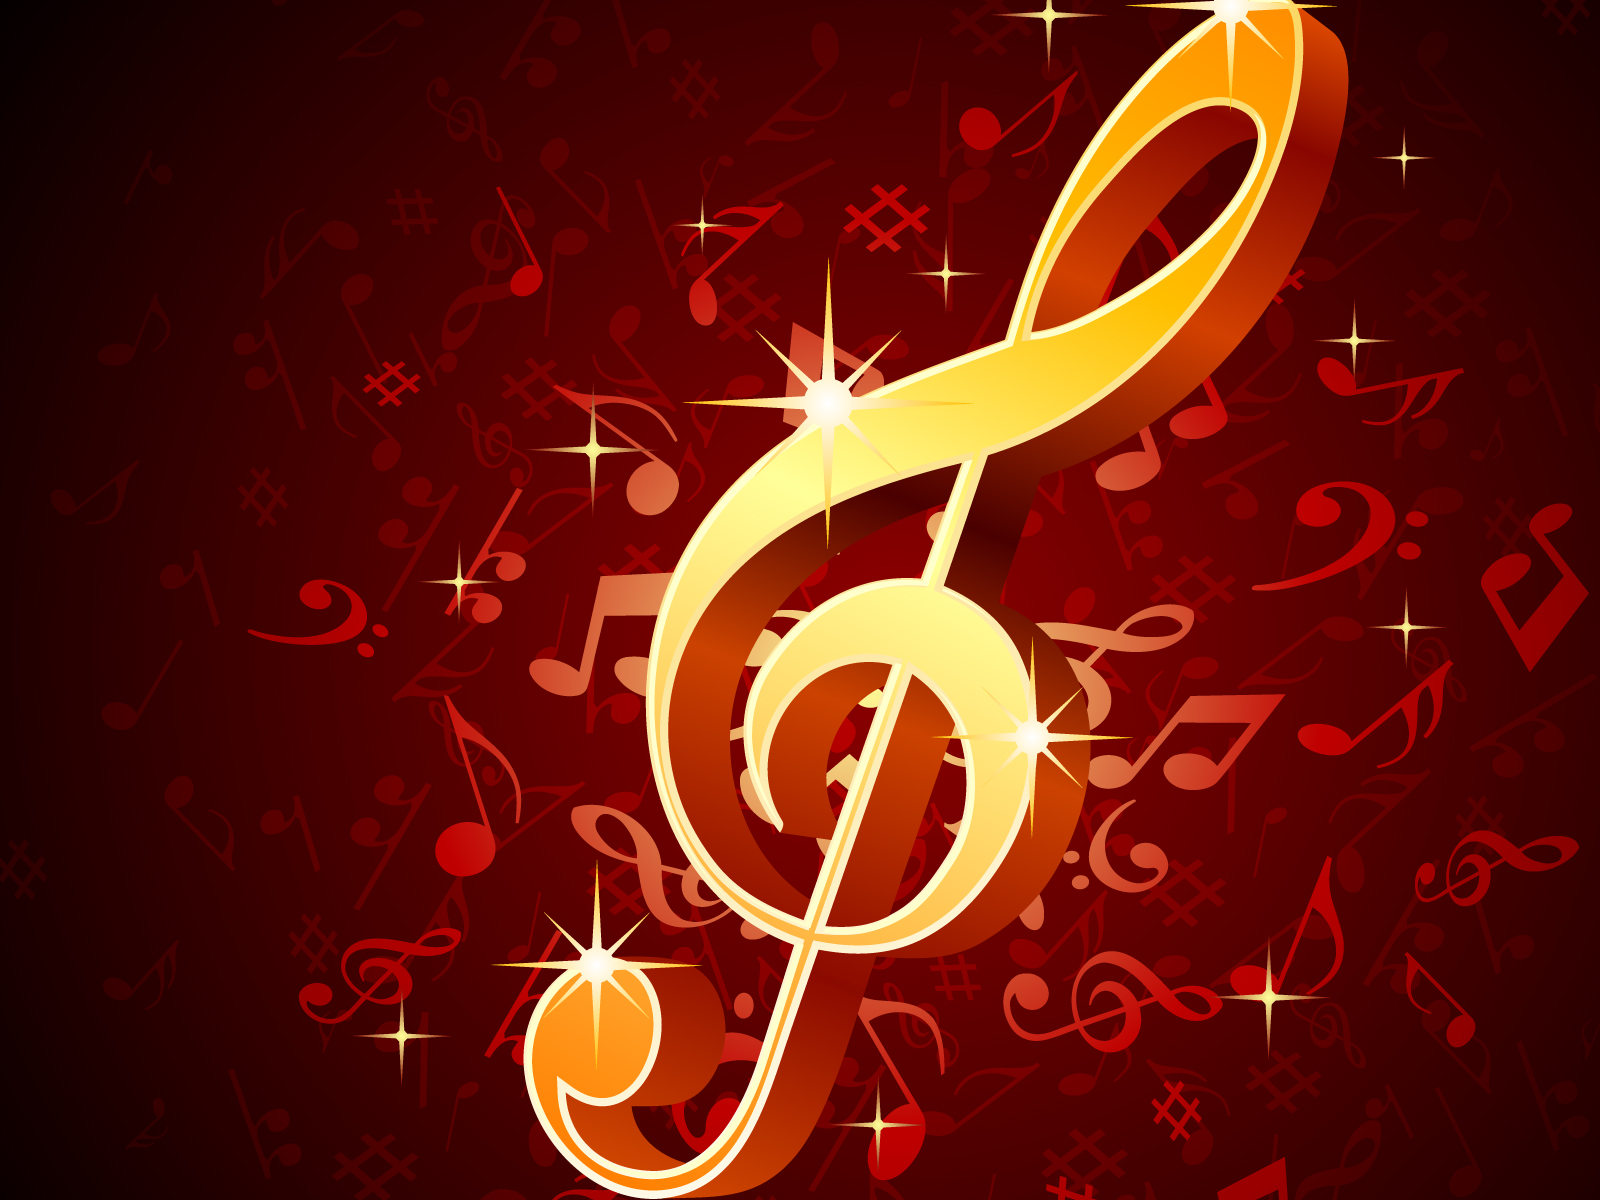 Flying Musical Notes PPT Backgrounds